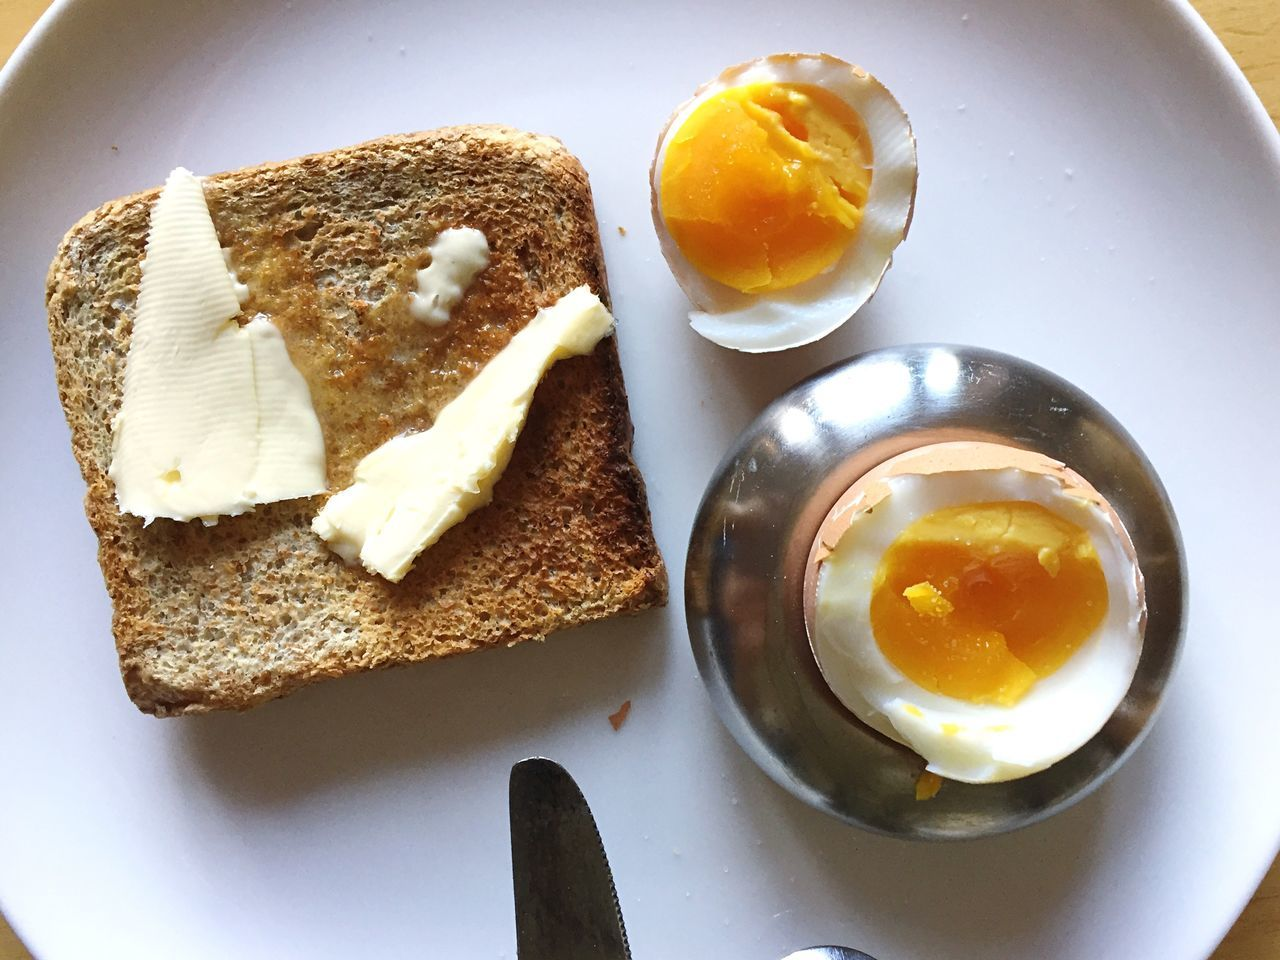 Breakfast for one Egg Breakfast Egg Yolk Fried Egg Bread Food And Drink Food Plate Healthy Eating Toasted Bread Freshness Ready-to-eat Egg White Boiled Egg Indoors  Table No People Serving Size High Angle View Omelet